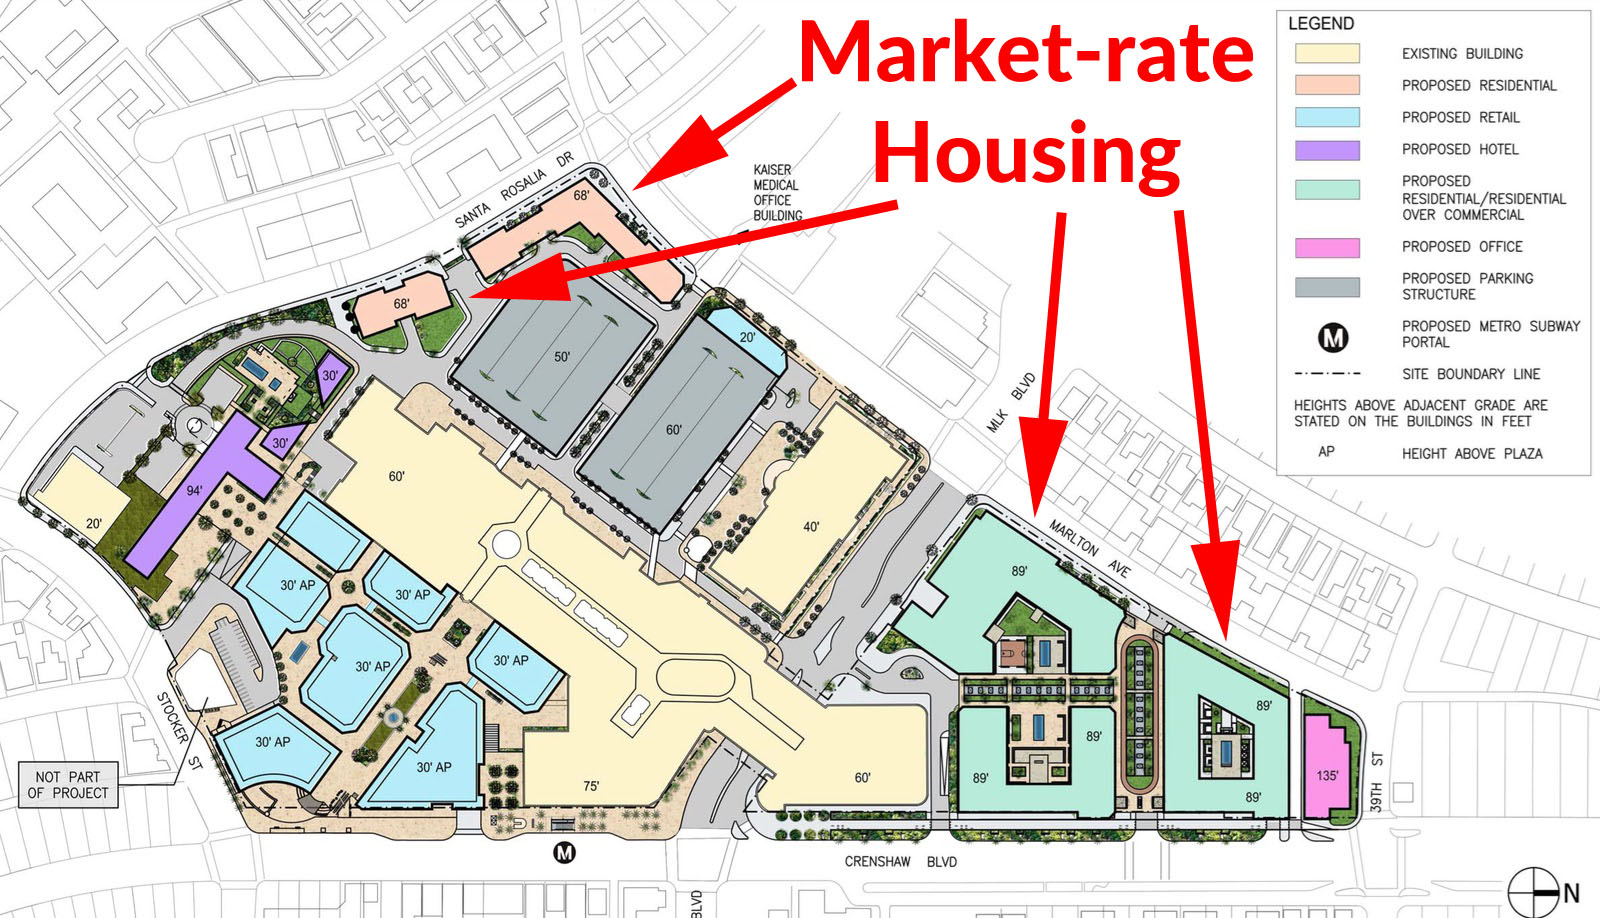 Crenshaw-Mall-Market-Rate-Housing.jpg